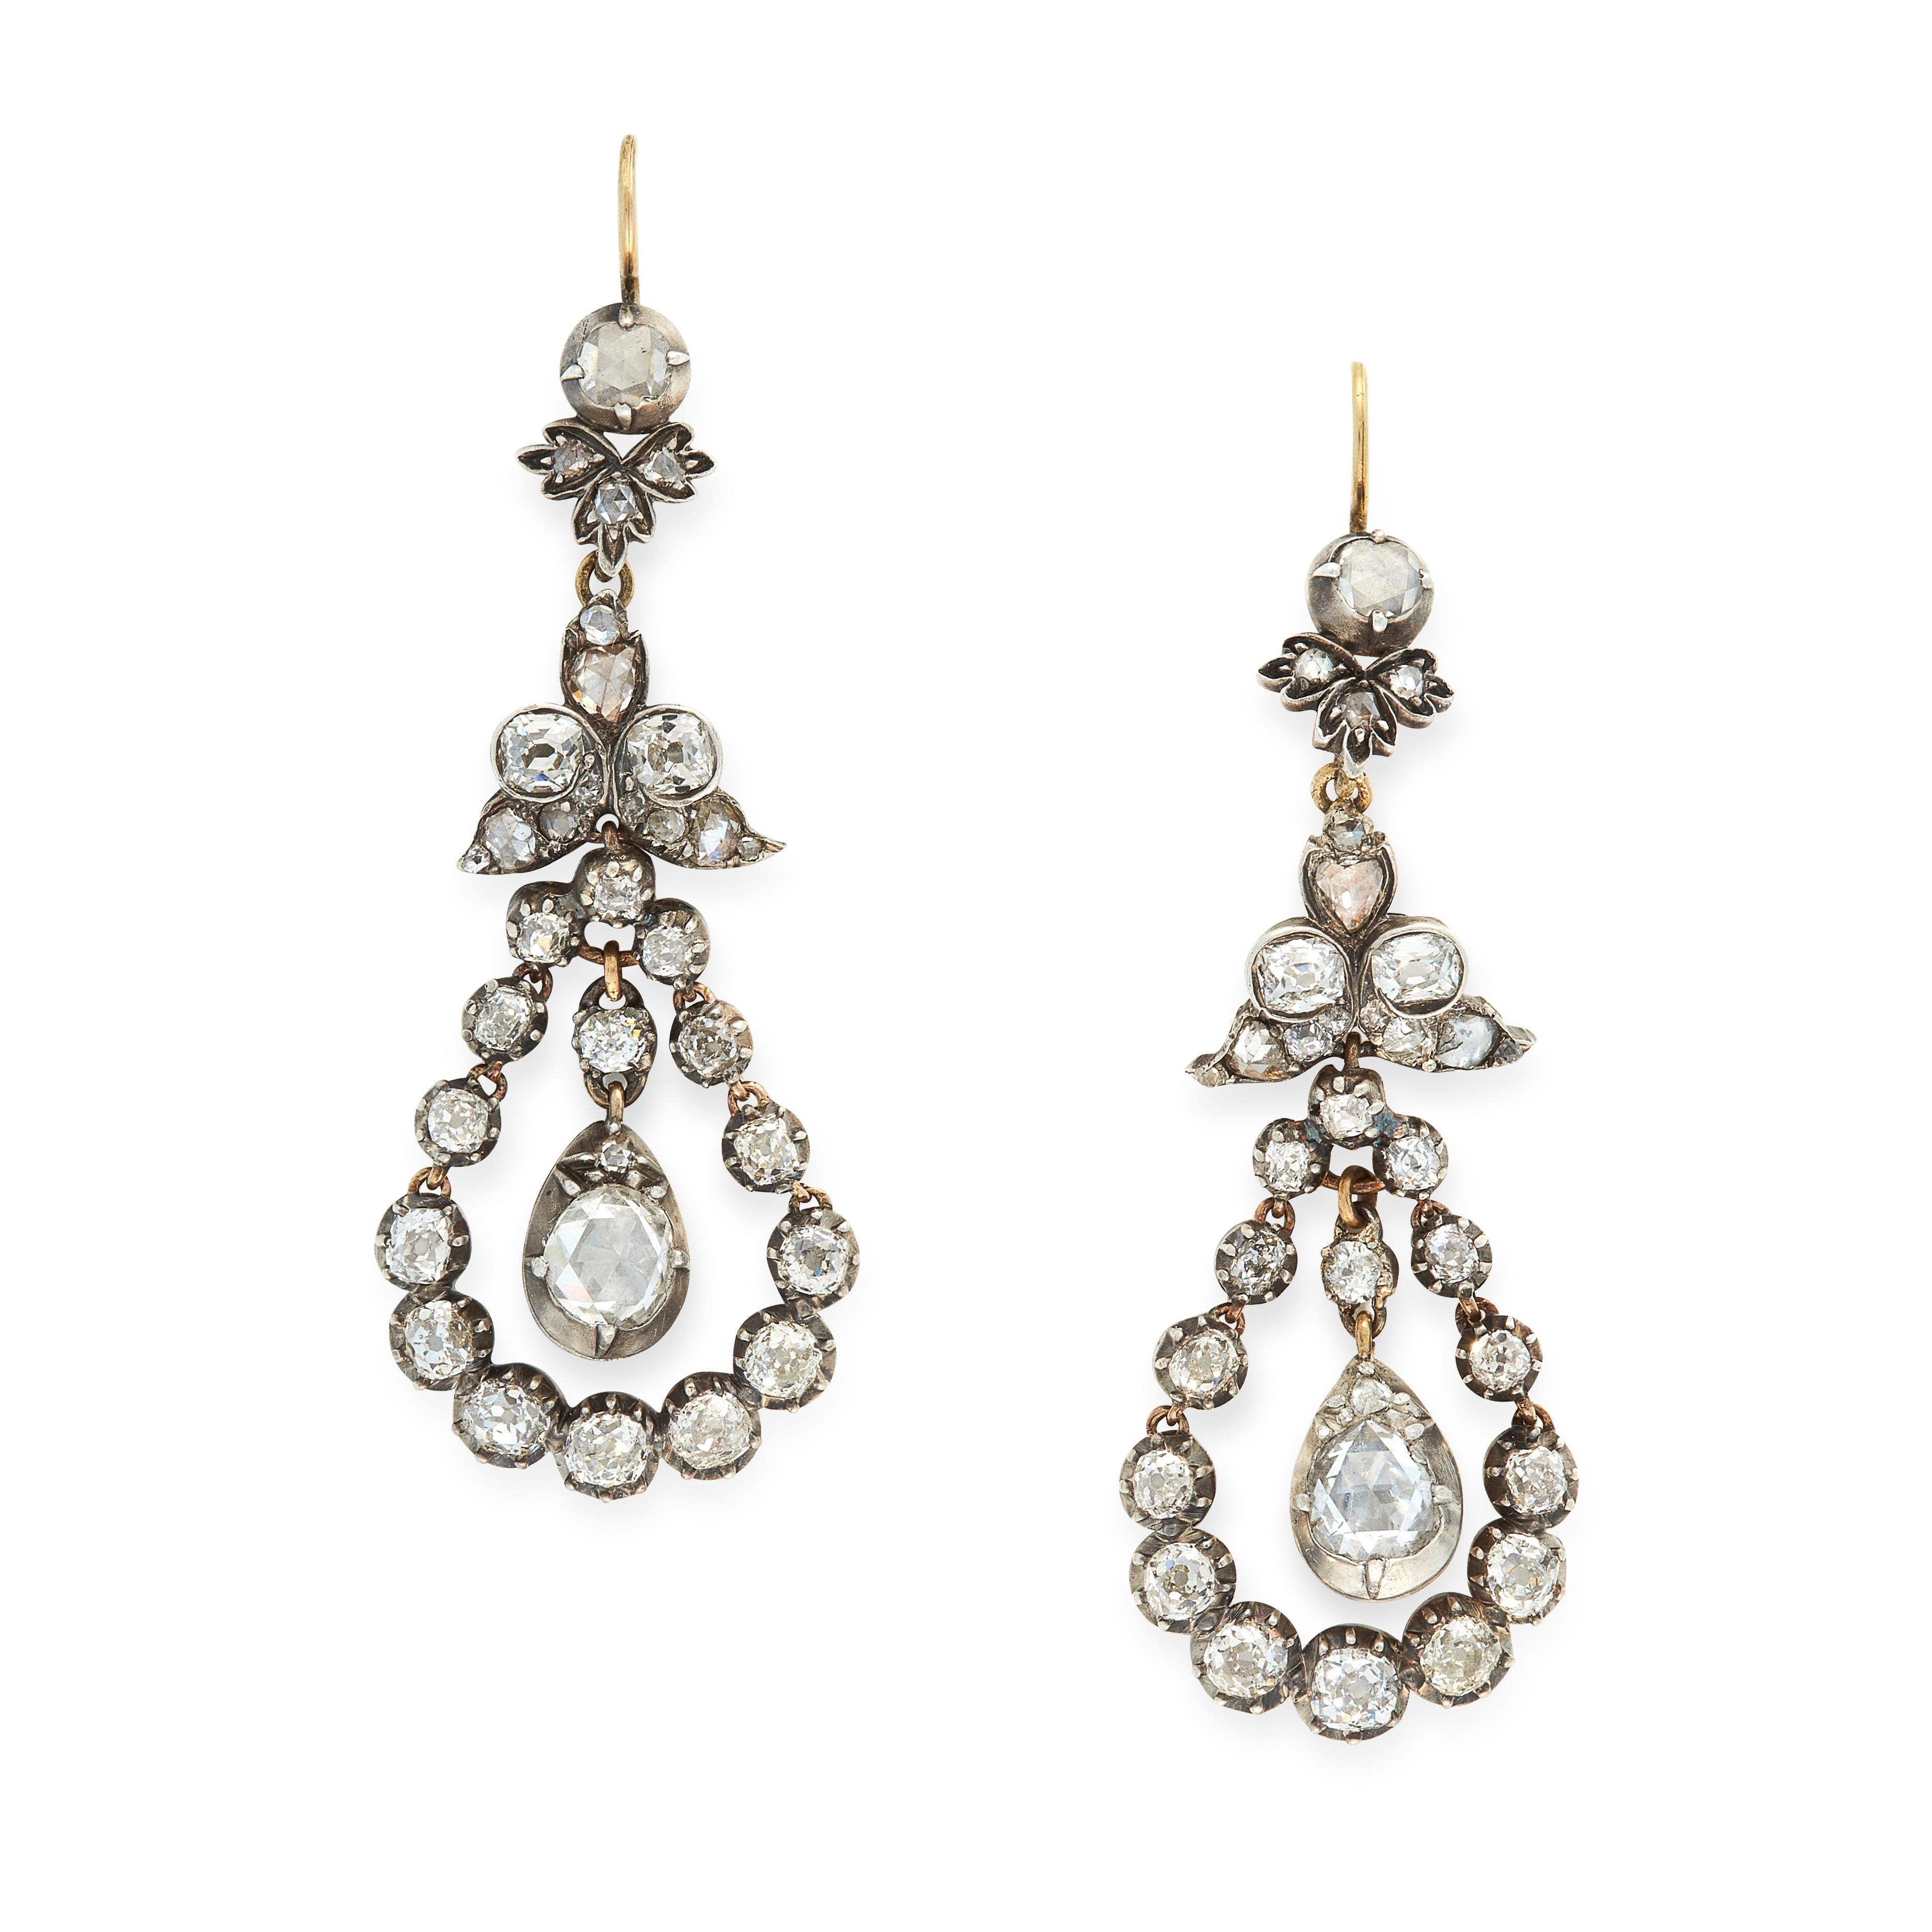 A PAIR OF ANTIQUE DIAMOND DROP EARRINGS, 19TH CENTURY in yellow gold and silver, the articulated